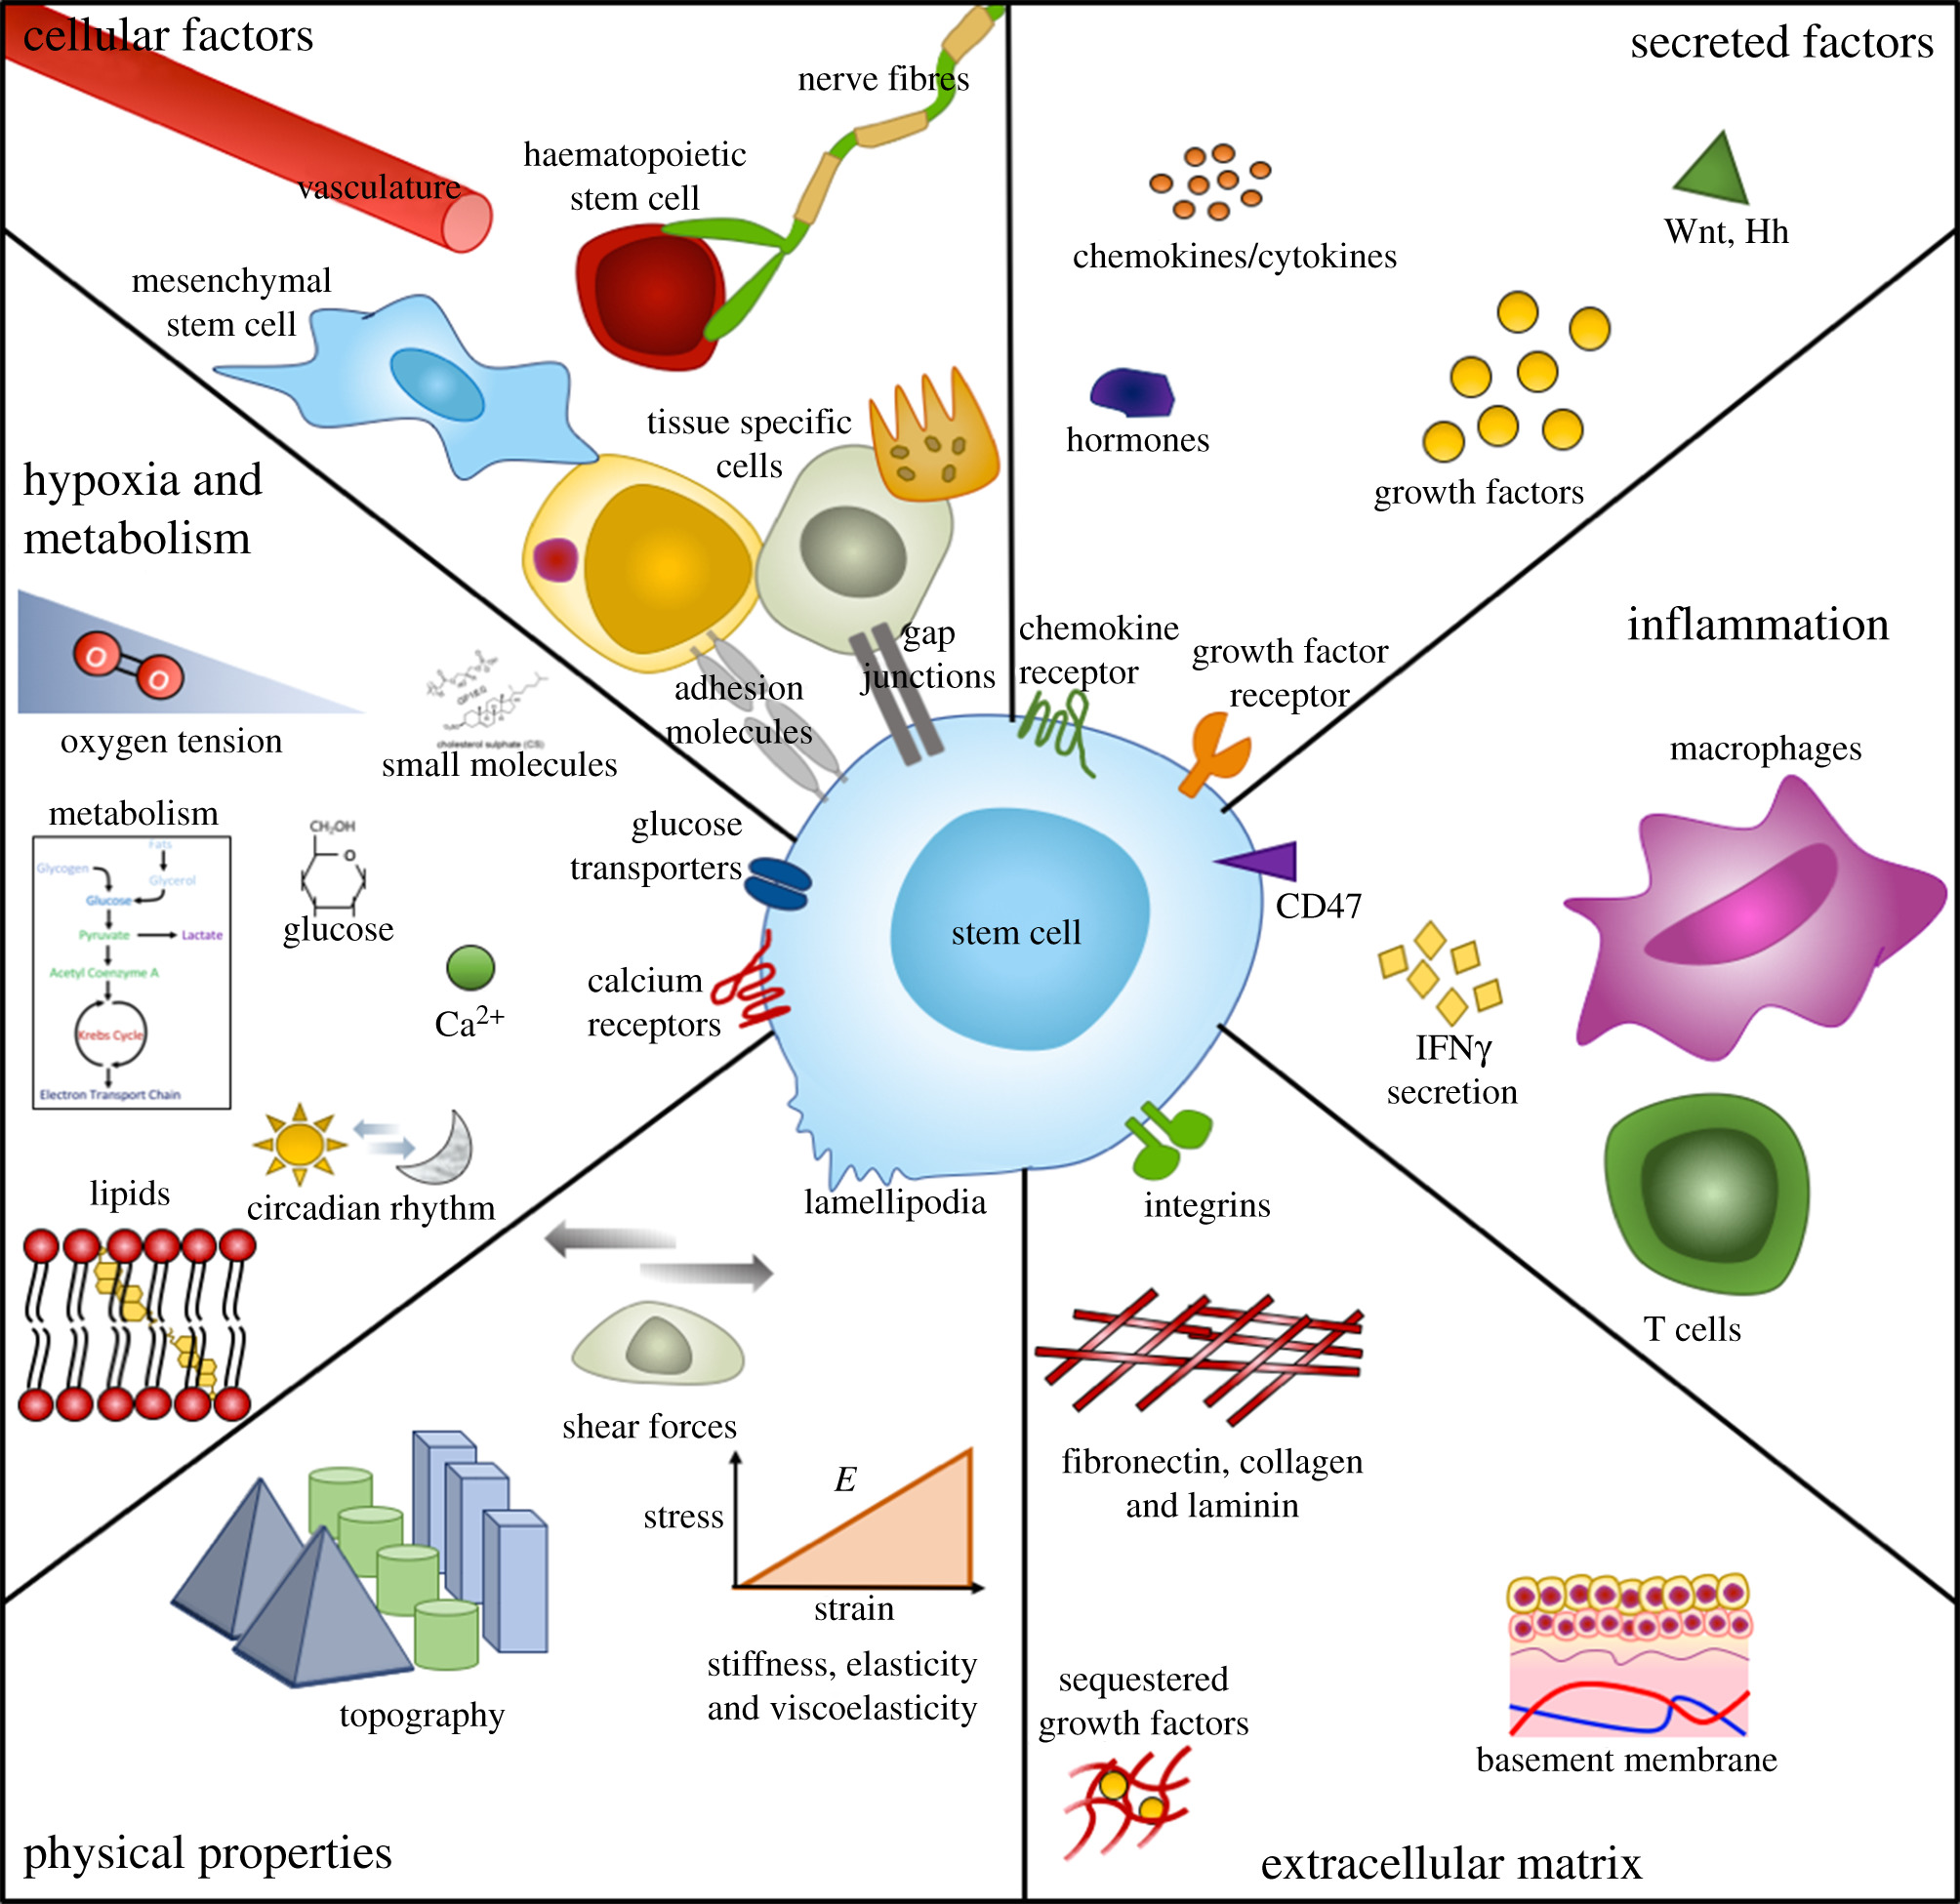 Designing stem cell niches for differentiation and self-renewal